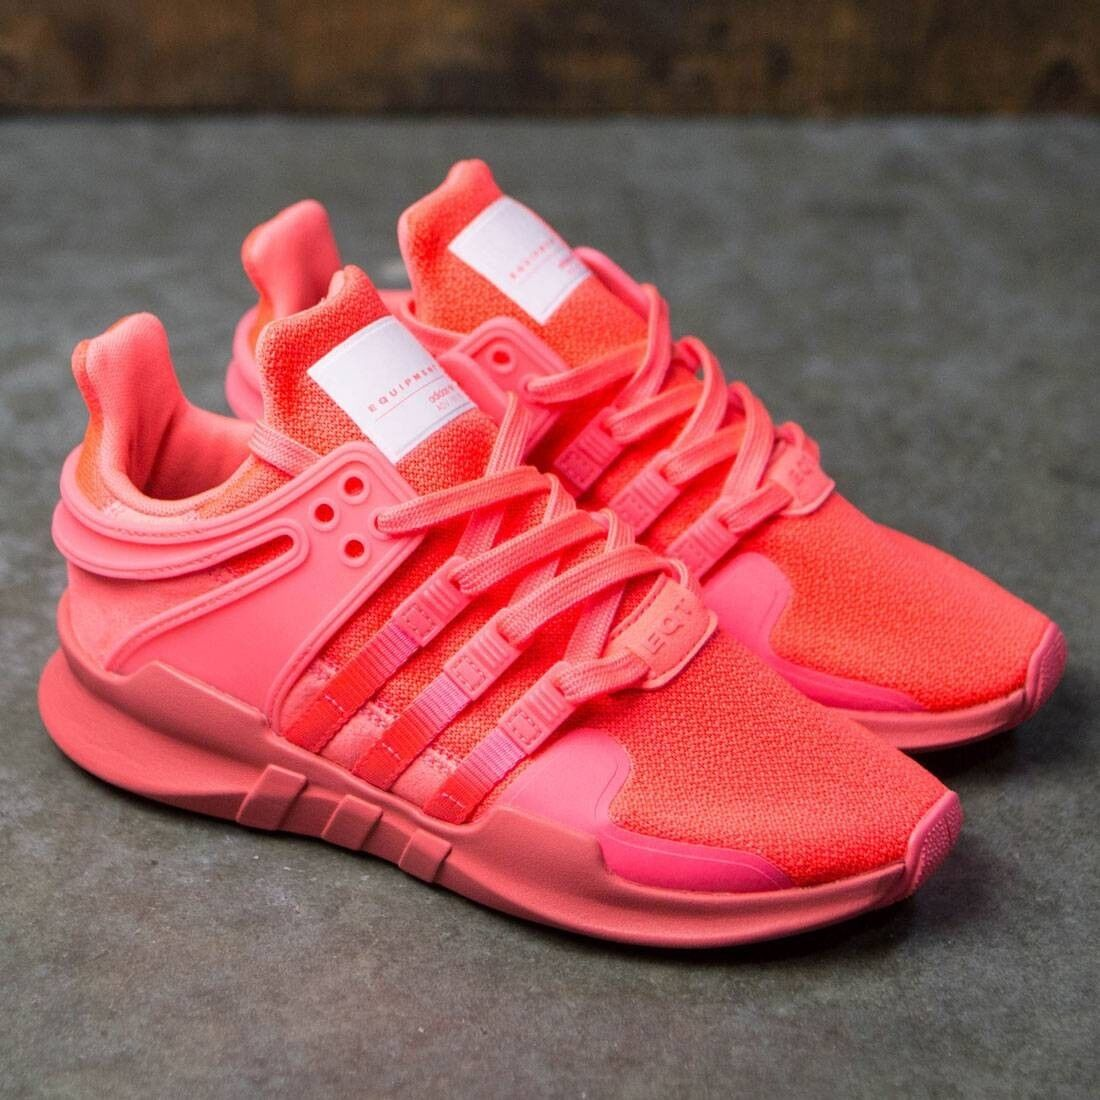 Adidas Equipment support ADV ZX W BB2326 EQT UK6.5 ZX ADV 8000 NMD BOOST tr 8000 charli 0d2d43